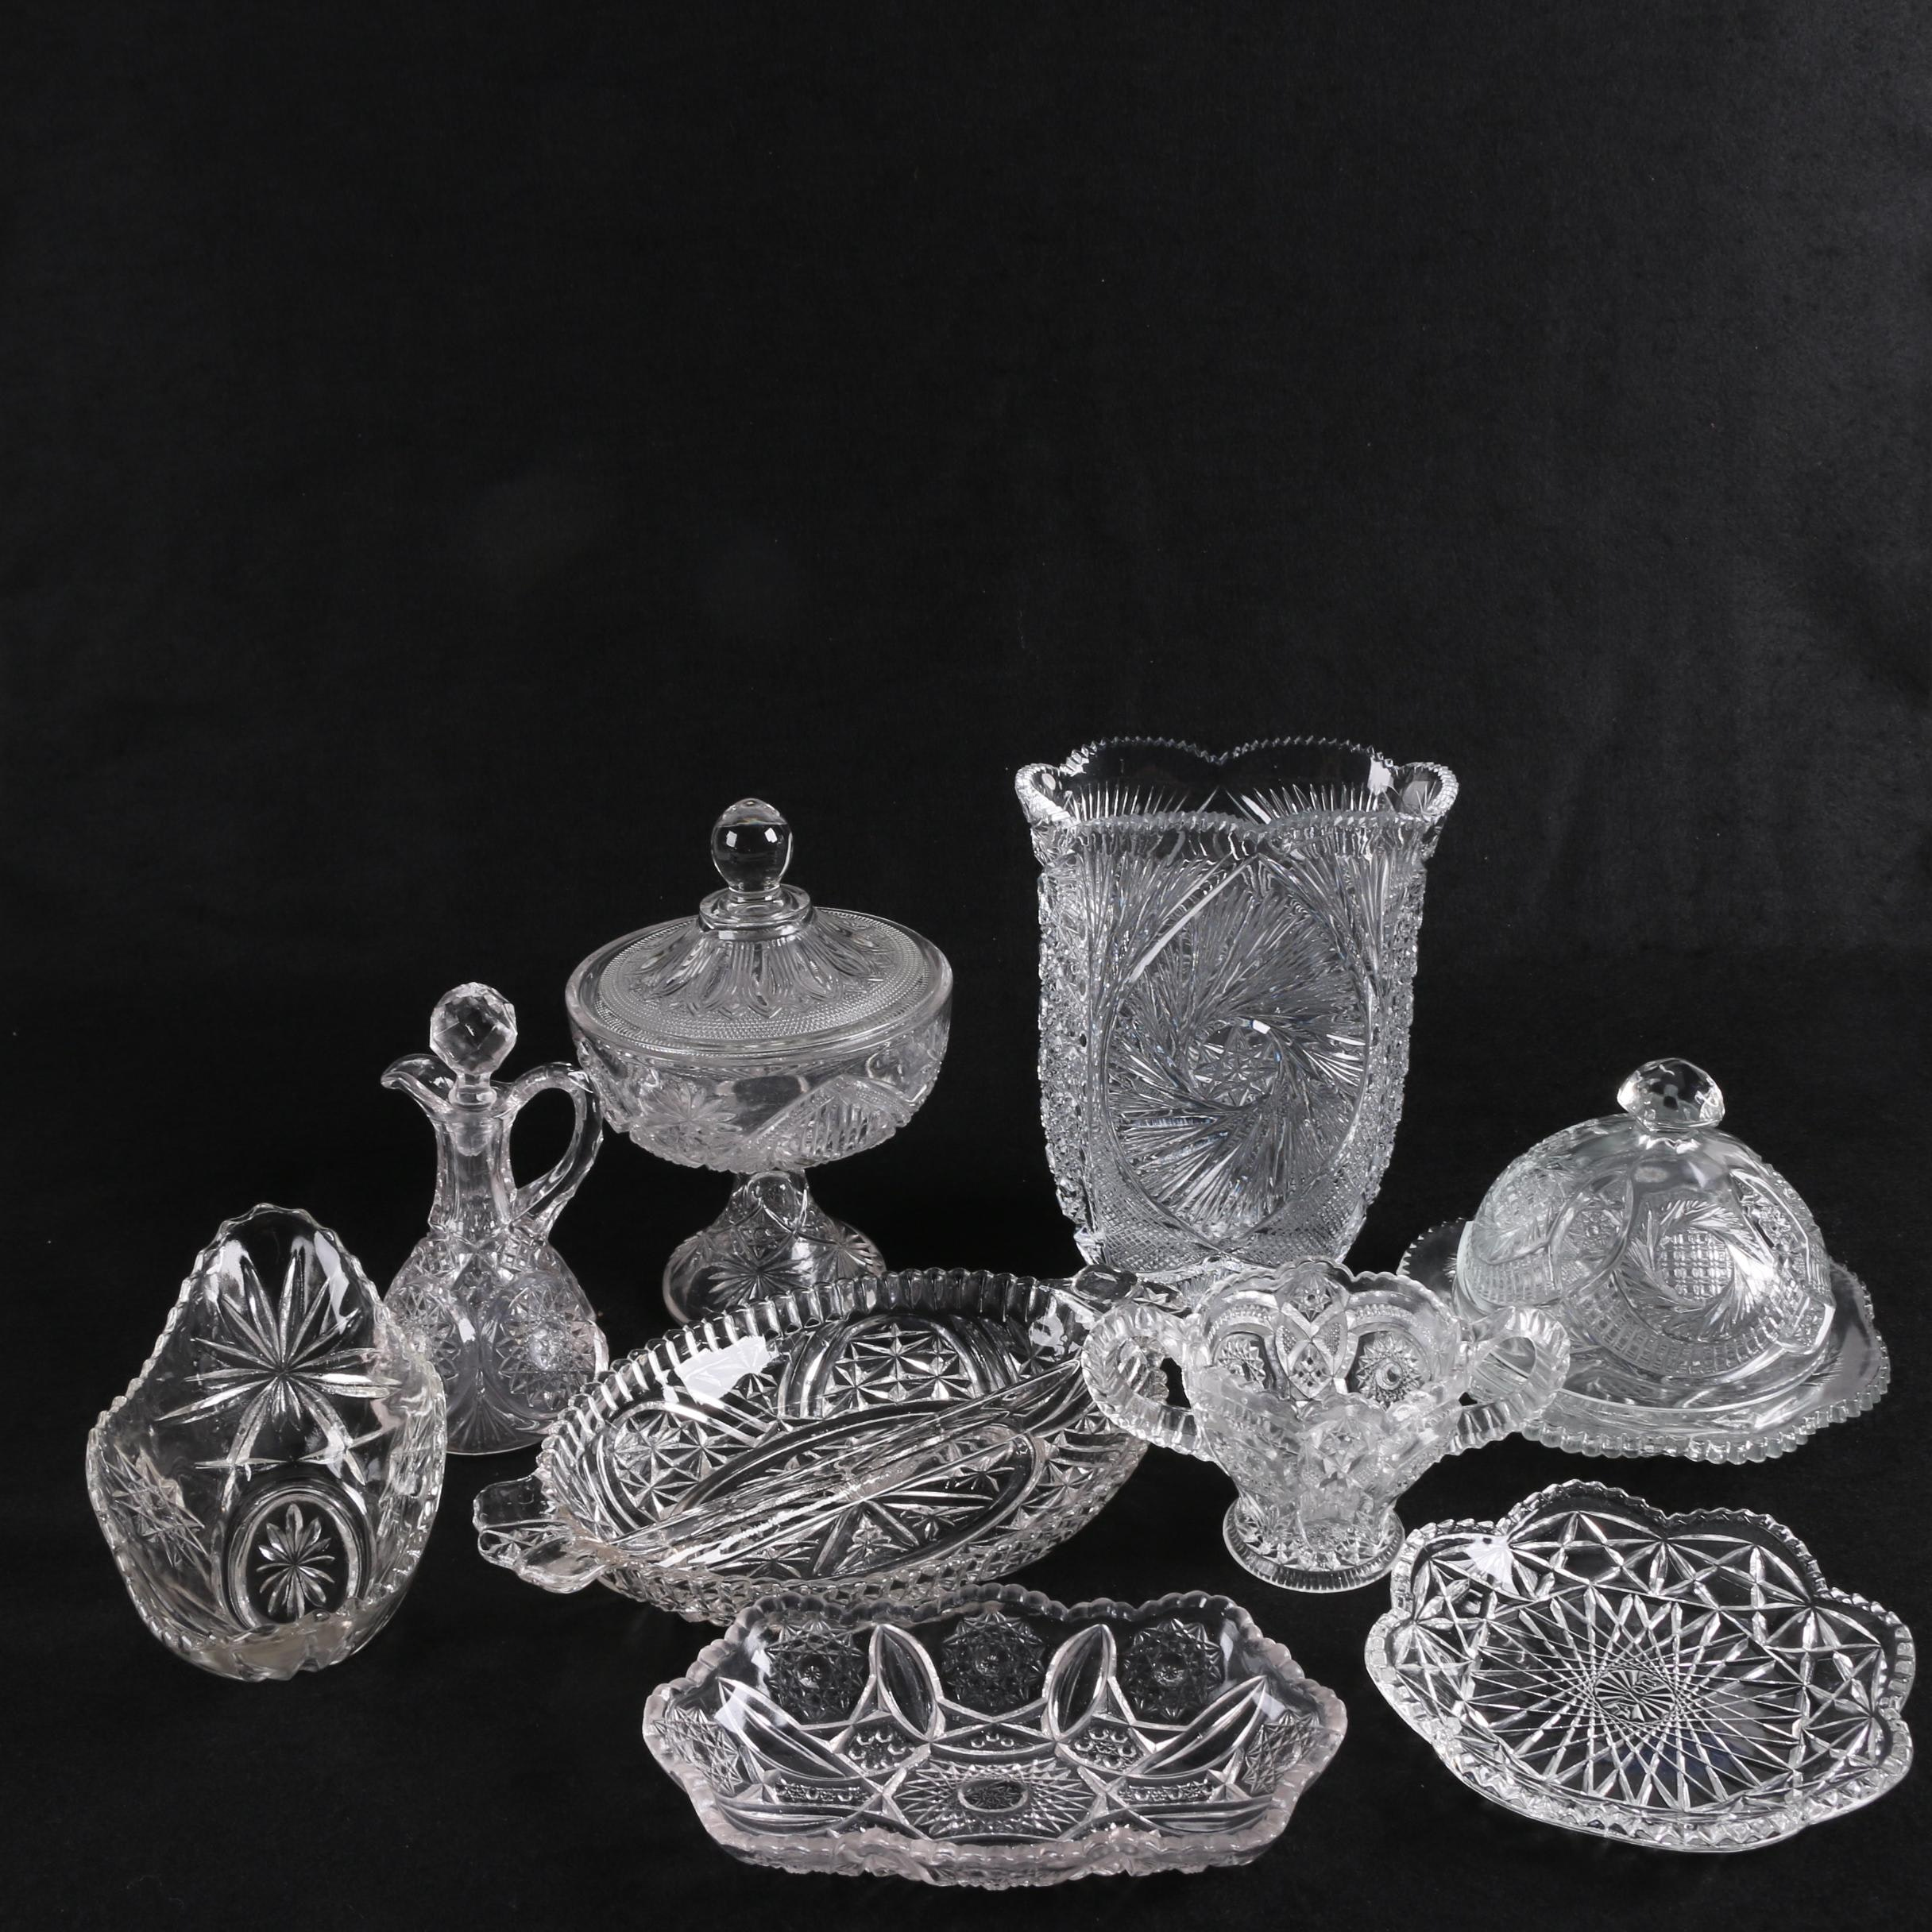 Crystal and Glass Décor and Tableware